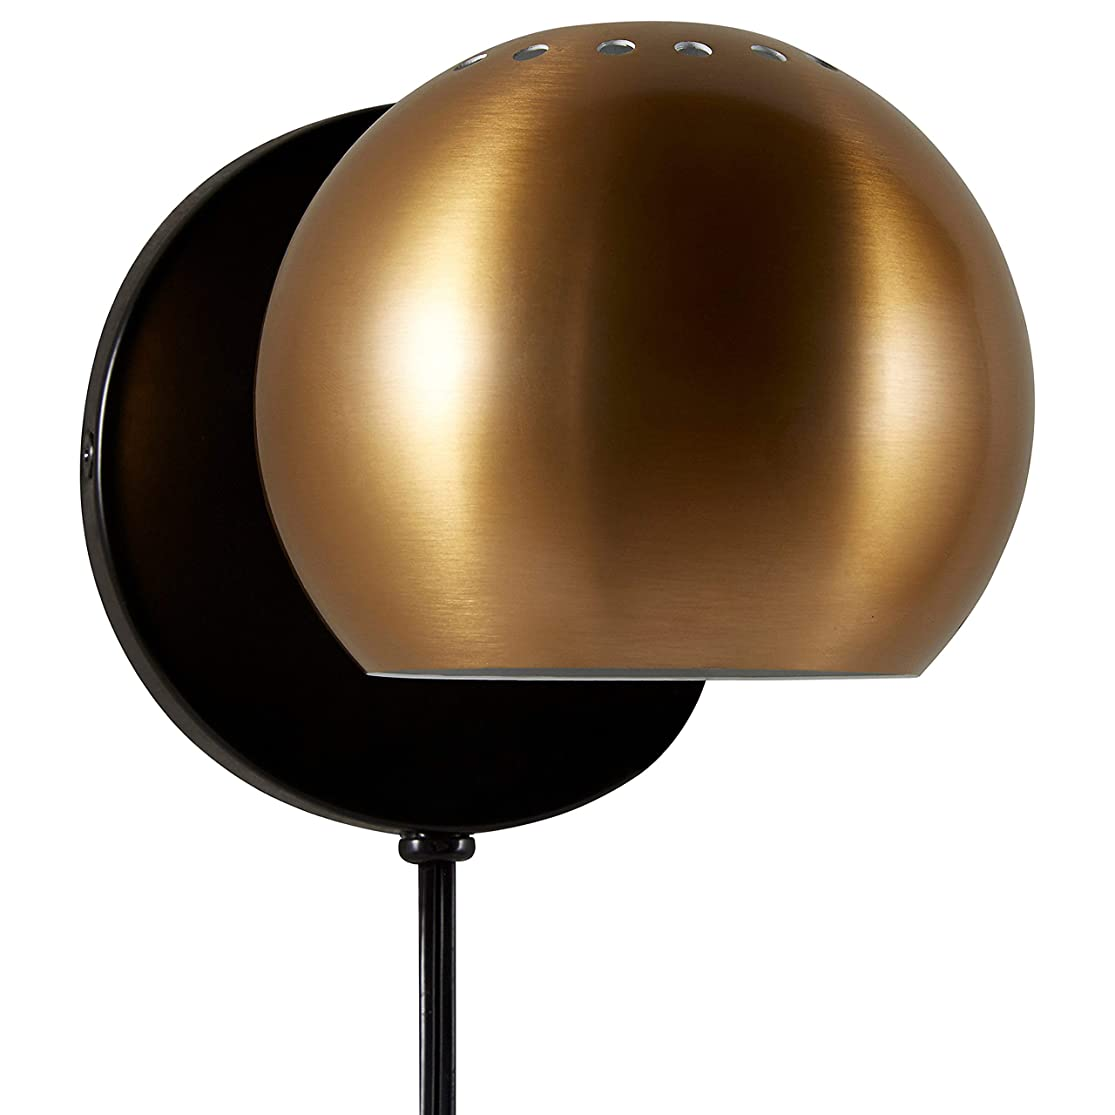 Rivet Mid Century Modern Wall Mounted Sconce Light Fixture Reading Lamp - 5 x 5 x 7 Inches, Gold havragtk4